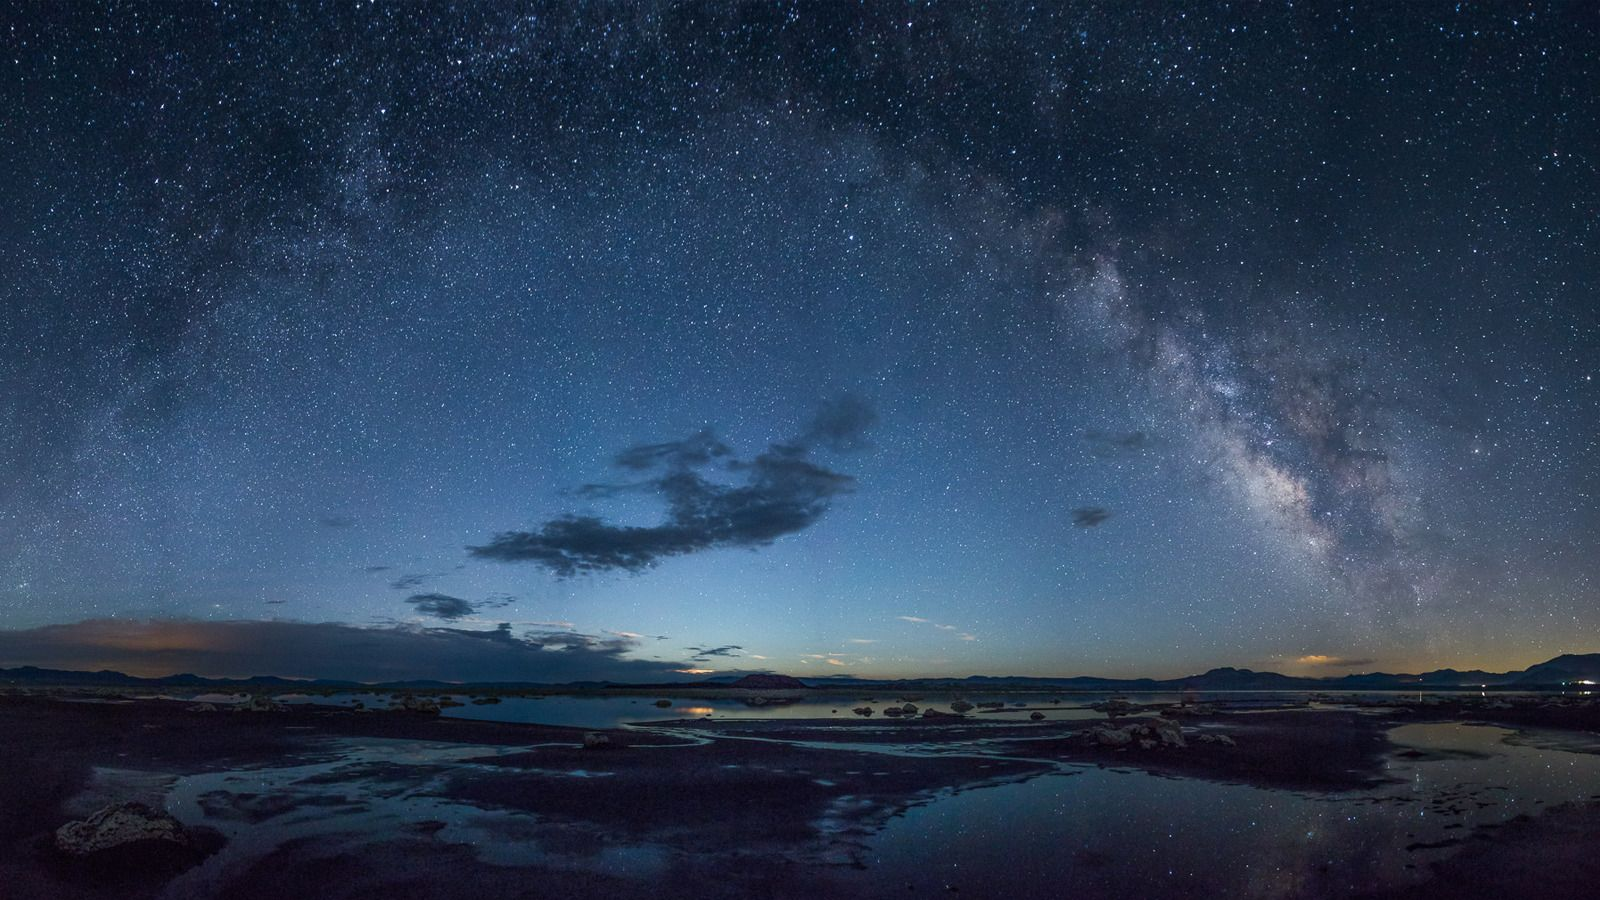 Astro Landscape Photography With Lance Keimig With Images Landscape Photography Landscape Photography